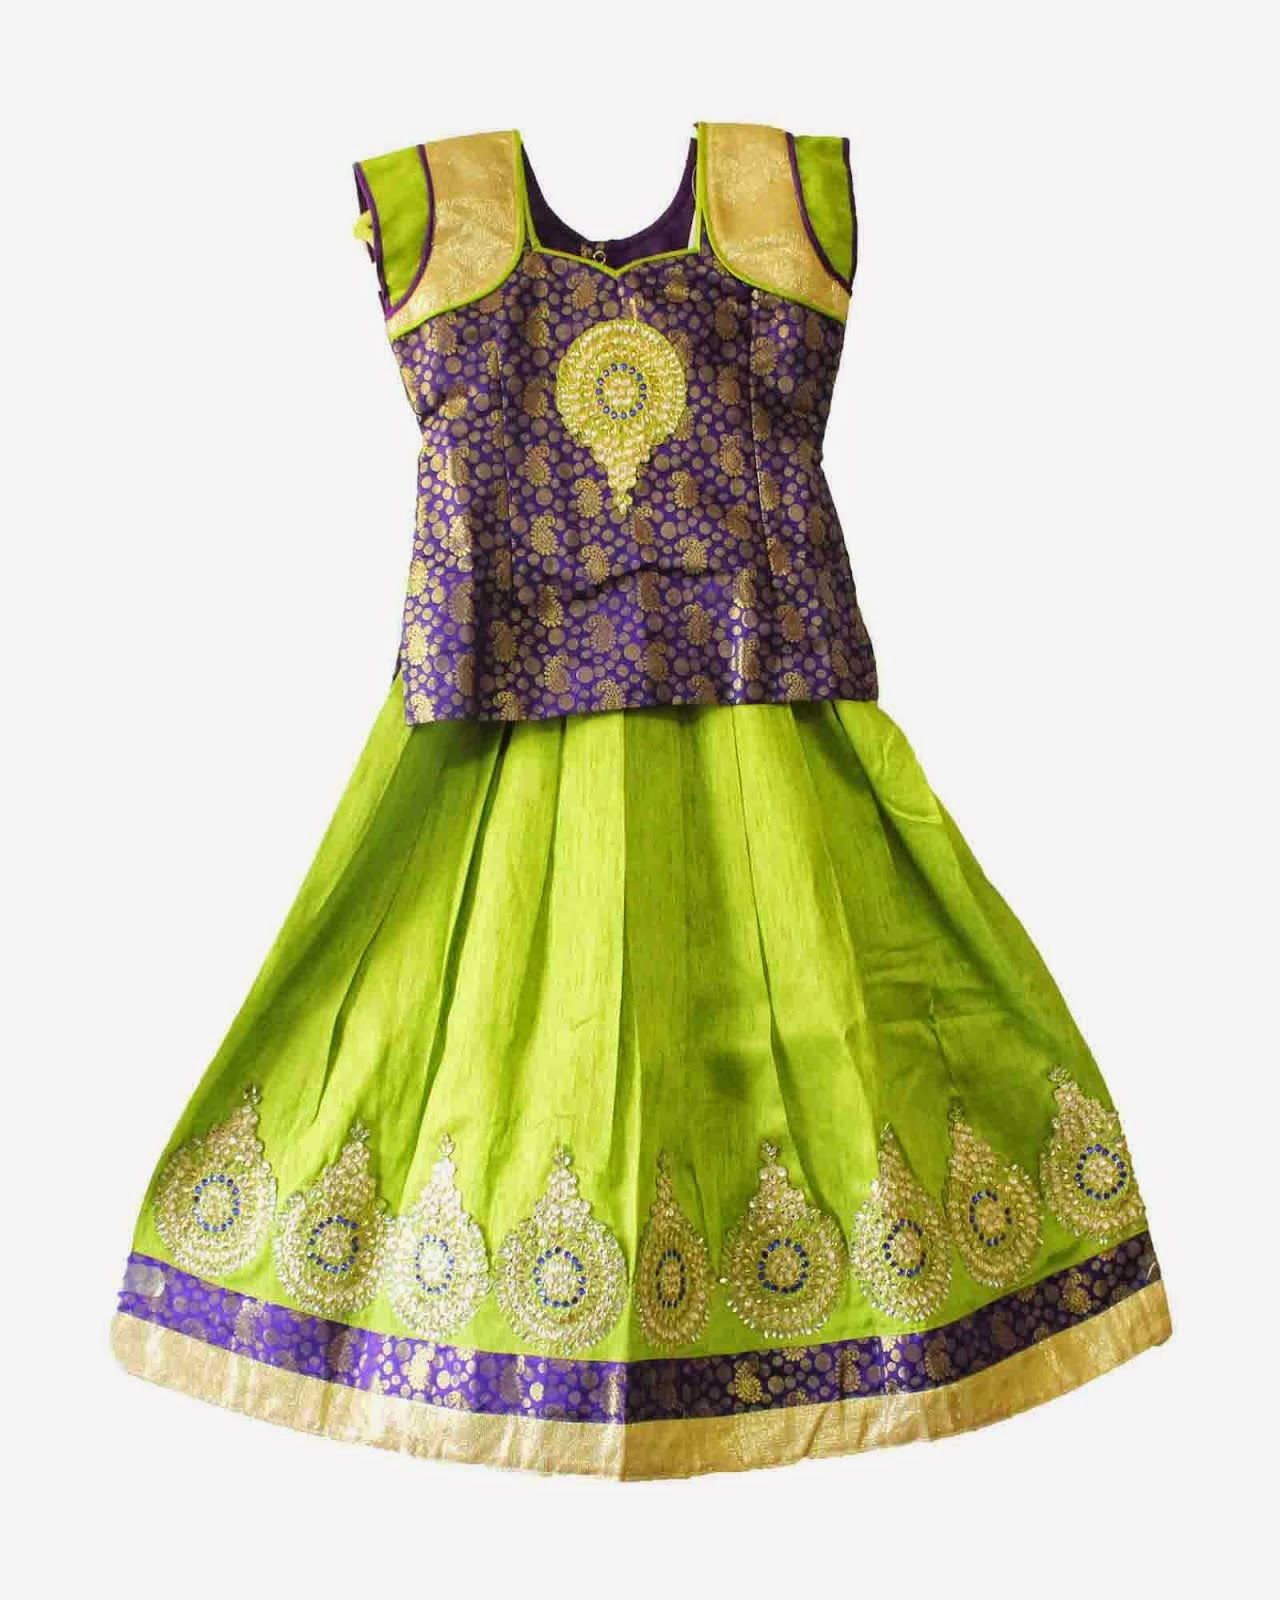 Girls wearing a pattu pavadai pattu pavadai for new born india kids